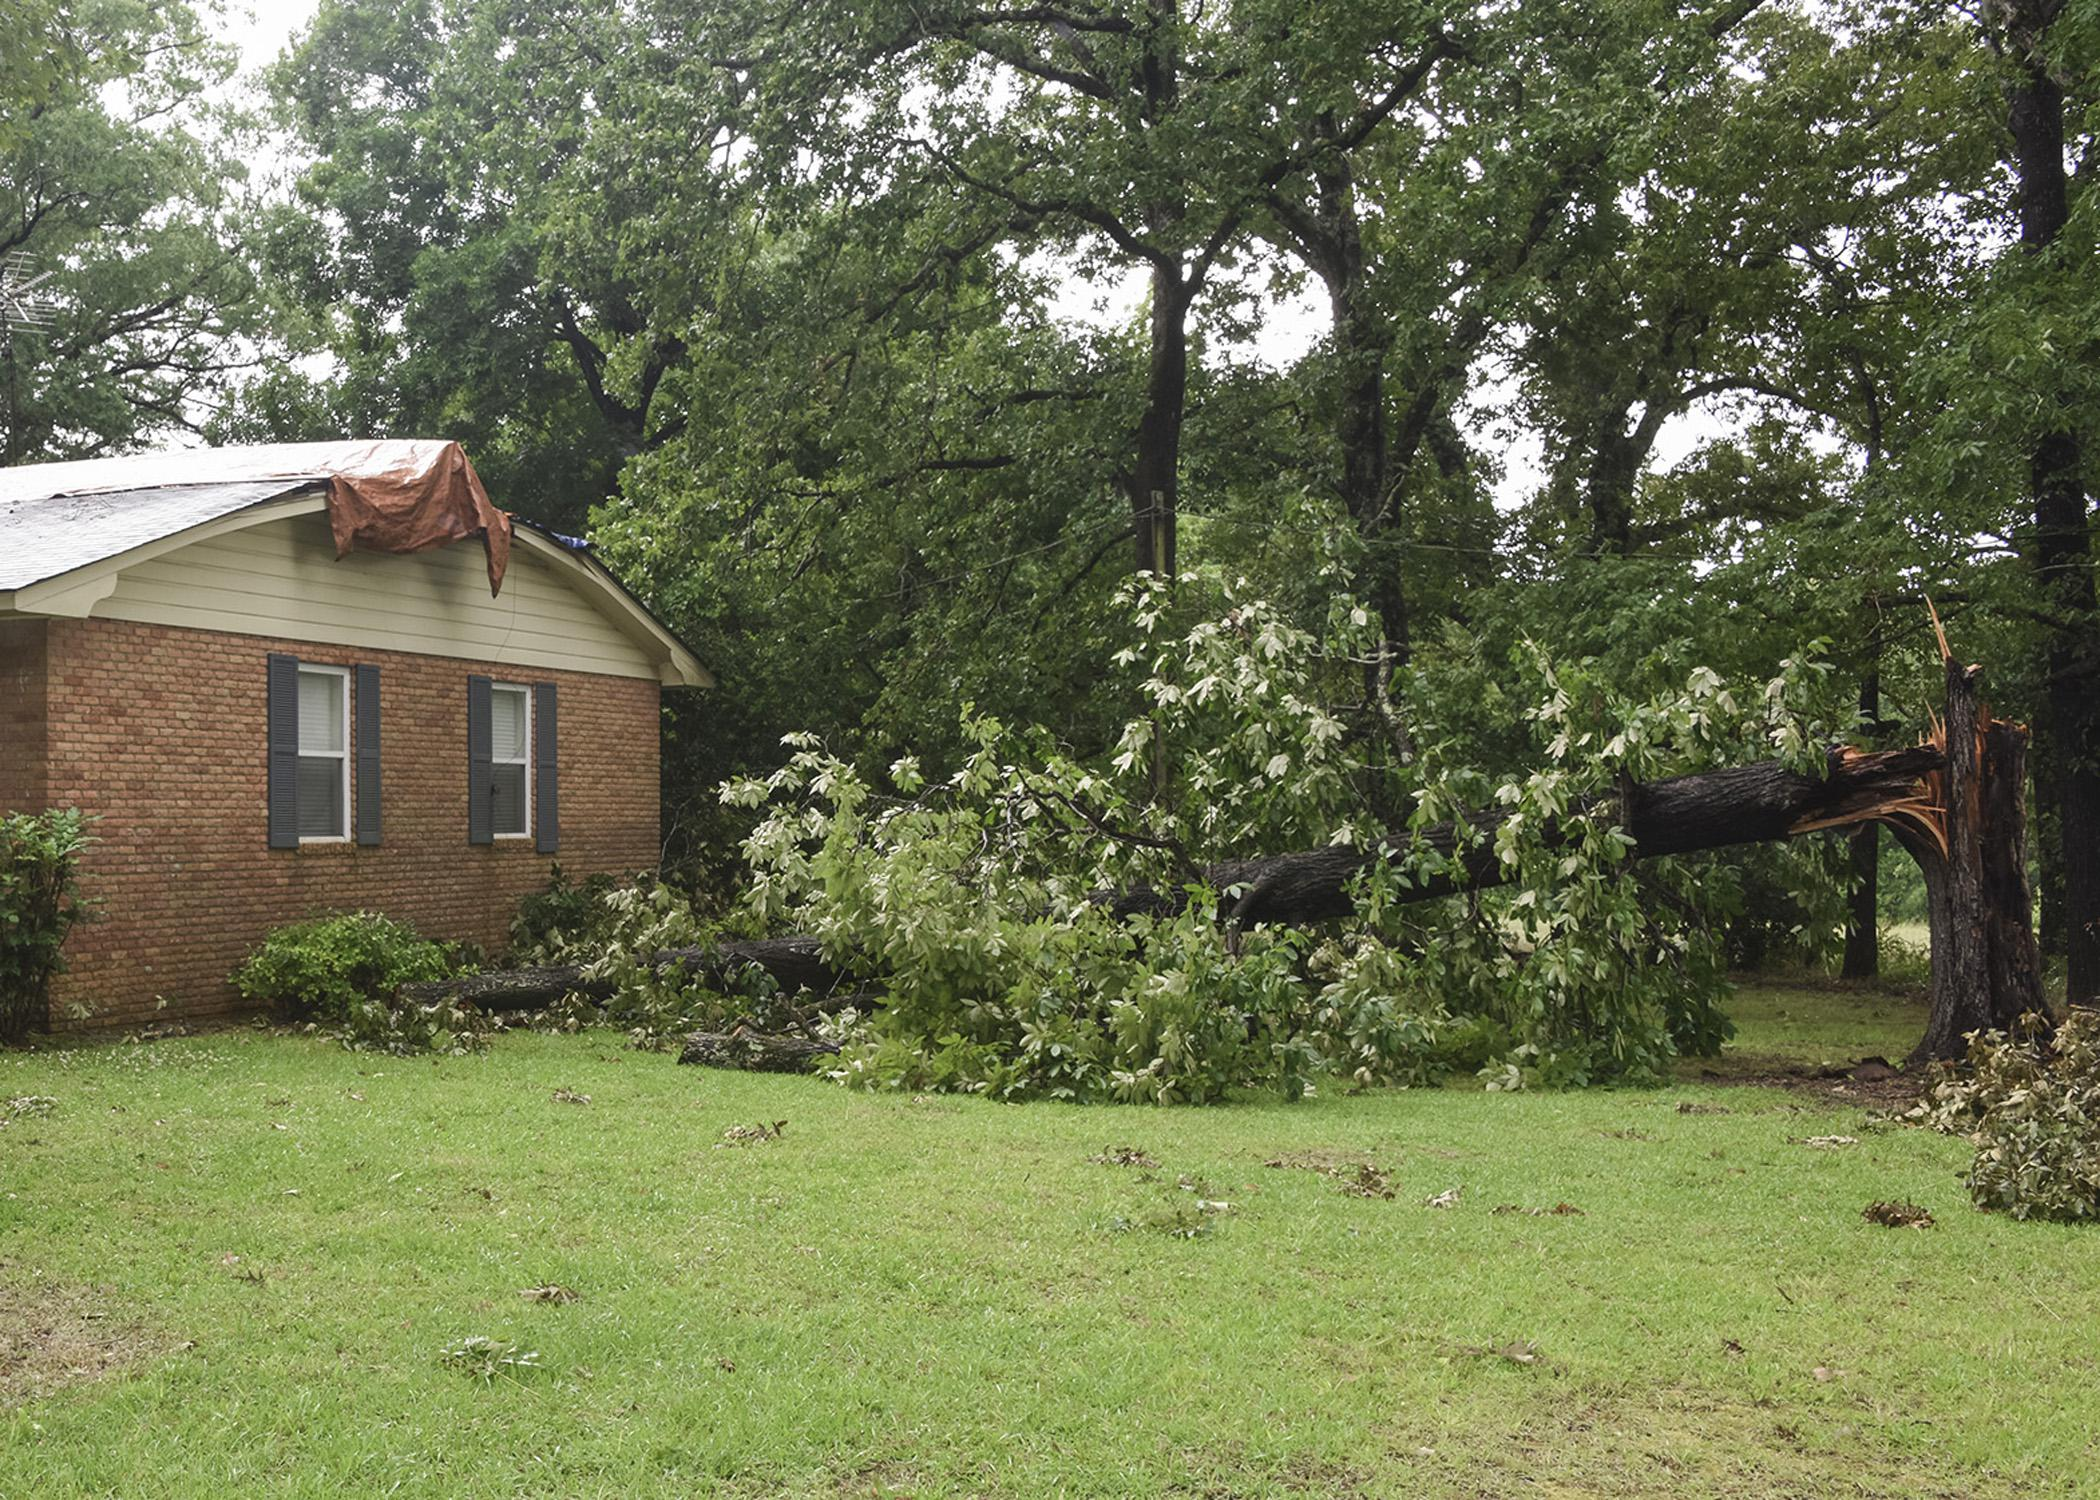 A large hardwood tree is snapped off and lays on the ground beside a house.